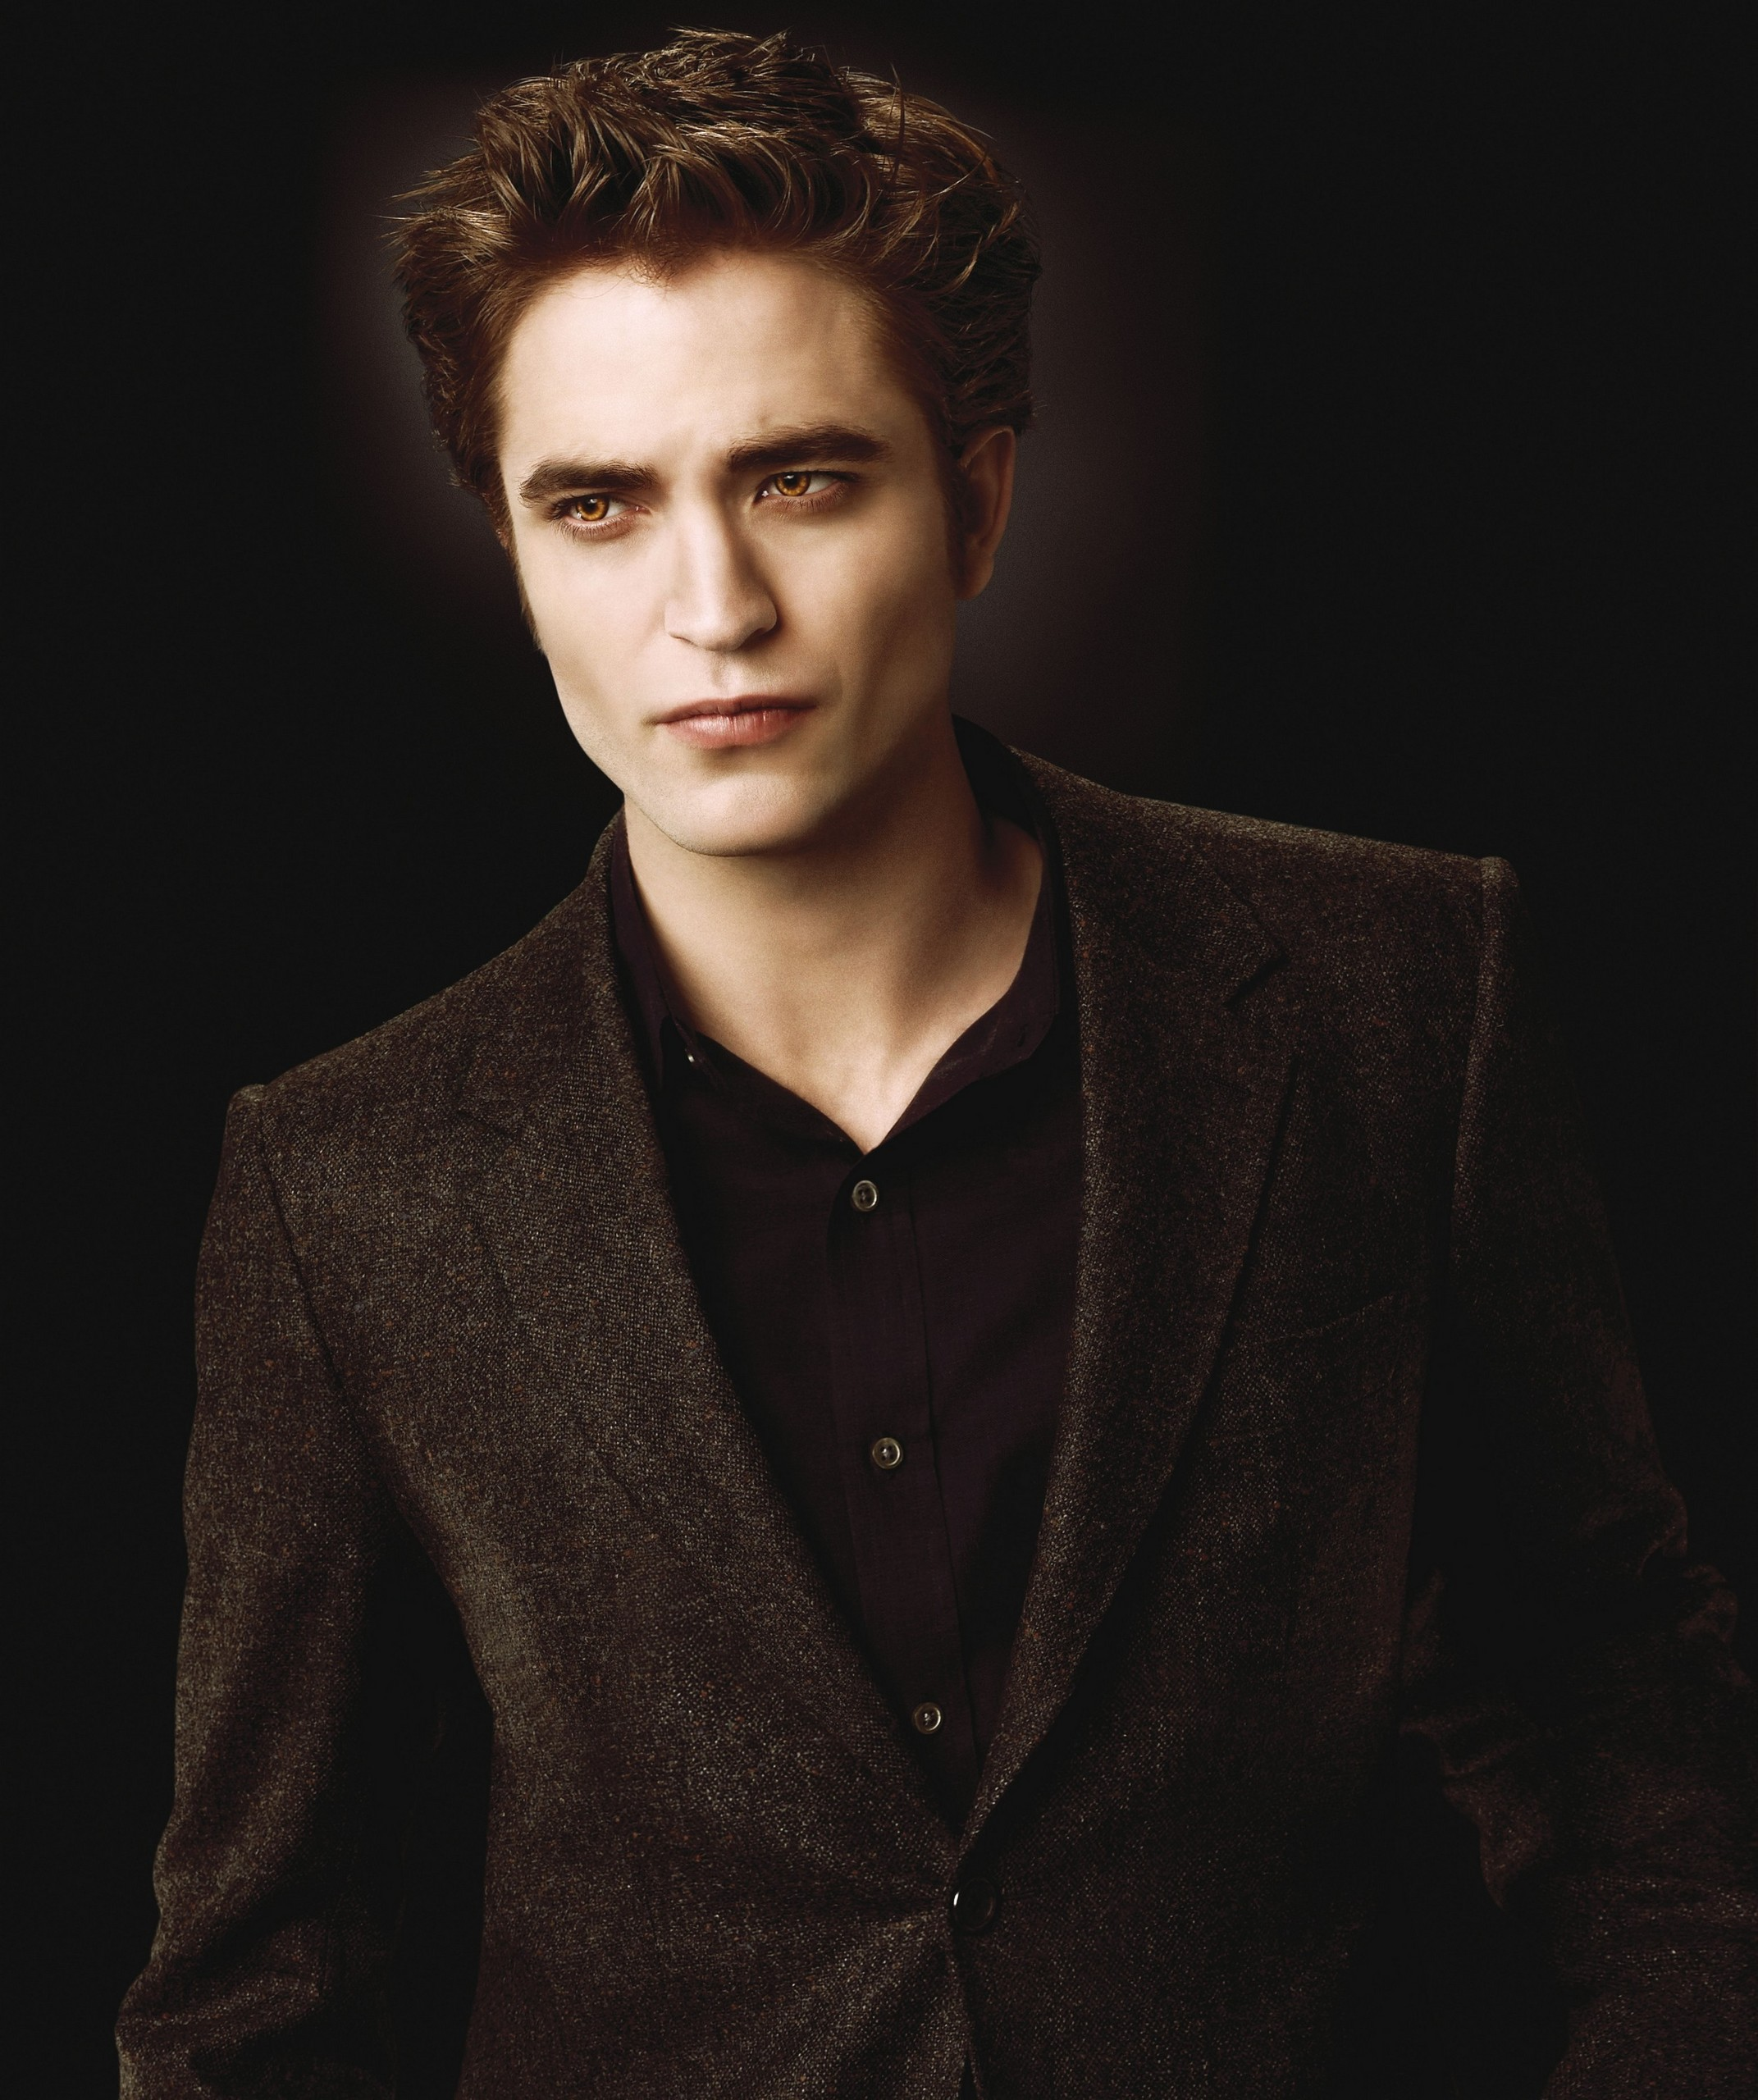 Hq edward cullen twilight crep sculo photo 9027164 for Twilight edward photos